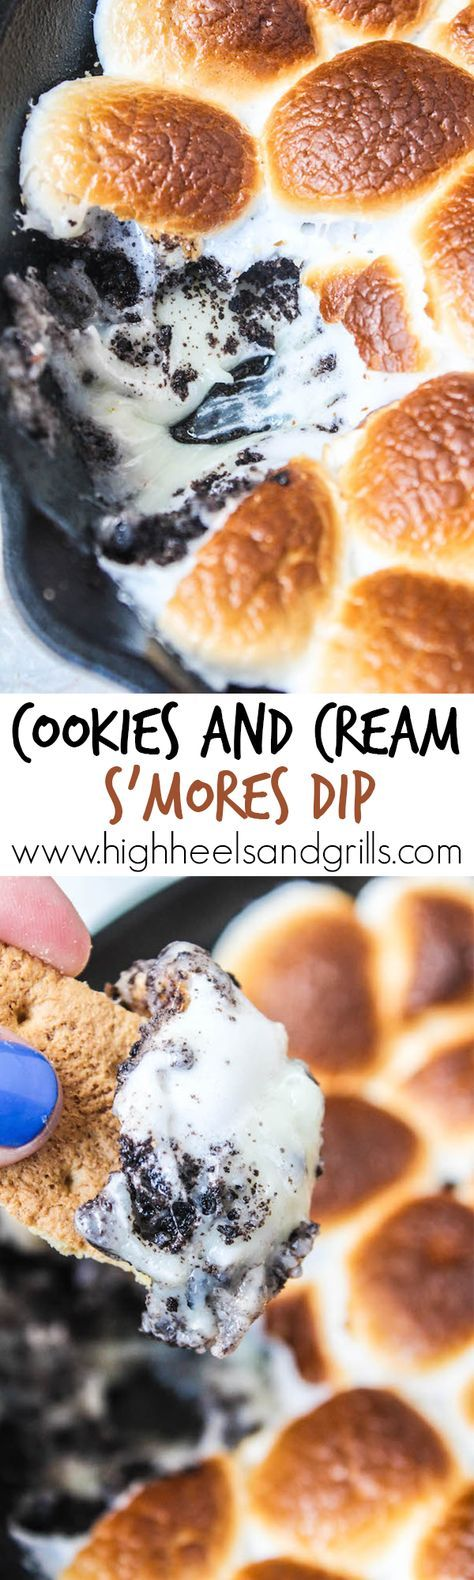 Cookies and Cream Smores Dip - White chocolate chips, crushed Oreos, and toasted marshmallows. Dip with graham crackers to fully enjoy this amazing dessert! http://www.highheelsandgrills.com/cookies-and-cream-smores-dip/